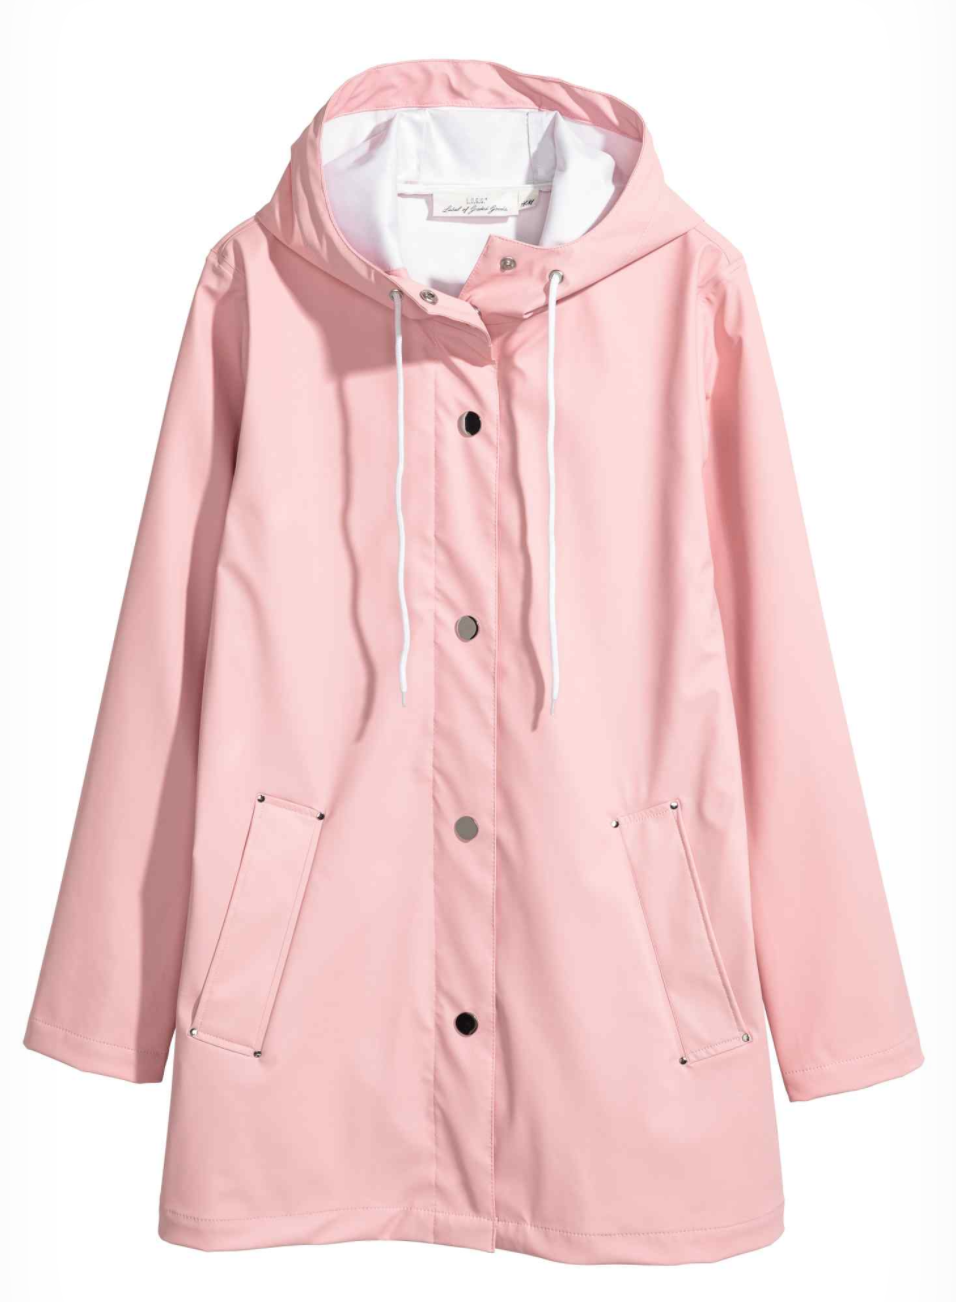 top five raincoats to get this autumn pretty in pink pastel blush coat jacket